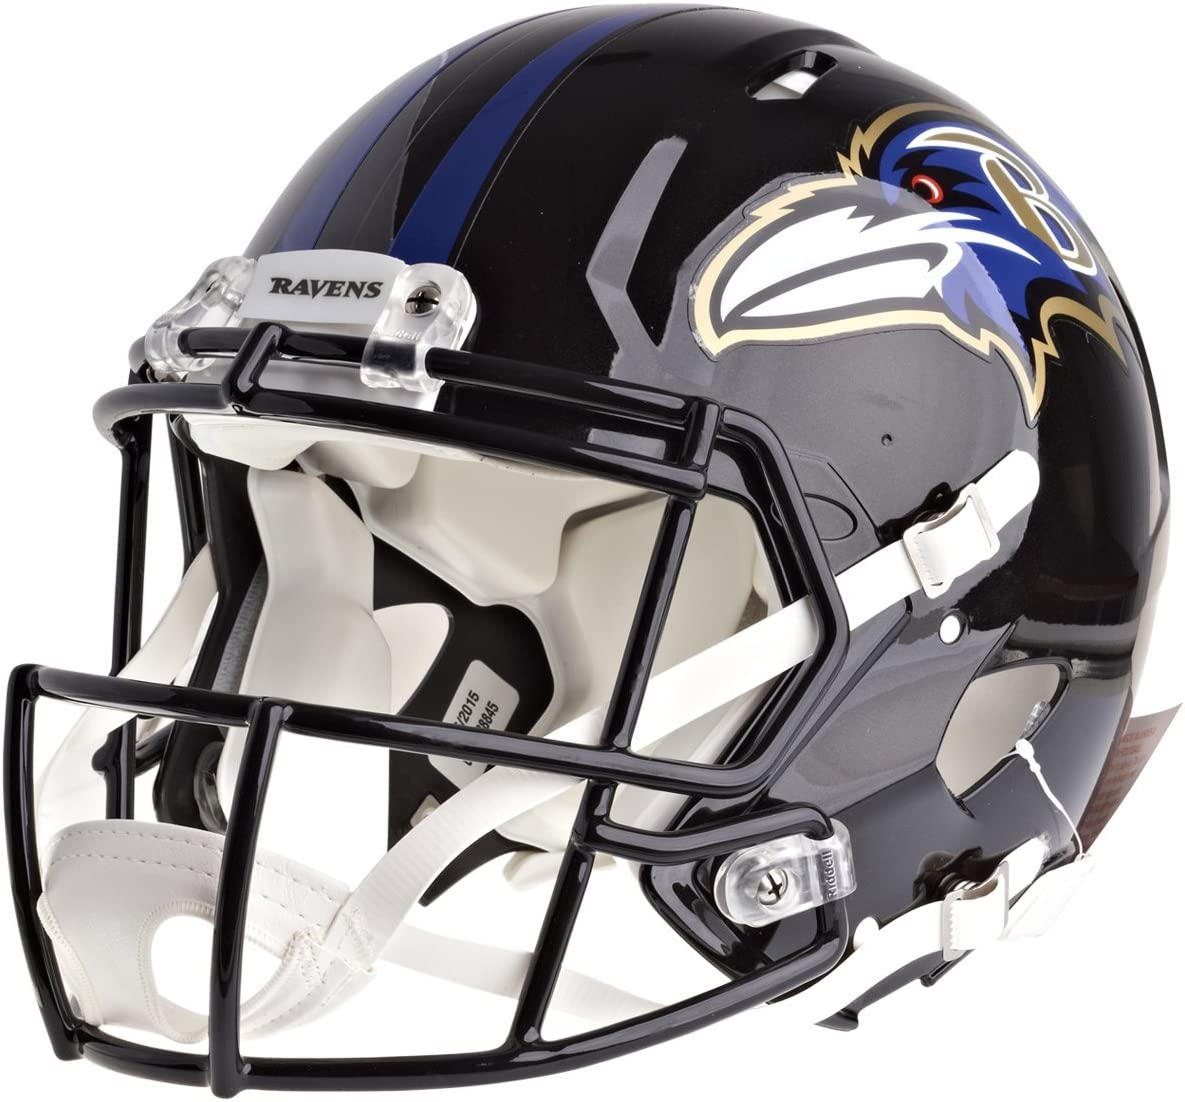 Amazon Com Riddell Nfl Baltimore Ravens Full Size Speed Replica Football Helmet Sports Related Collectible Full Sized Helmets Sports Outdoors